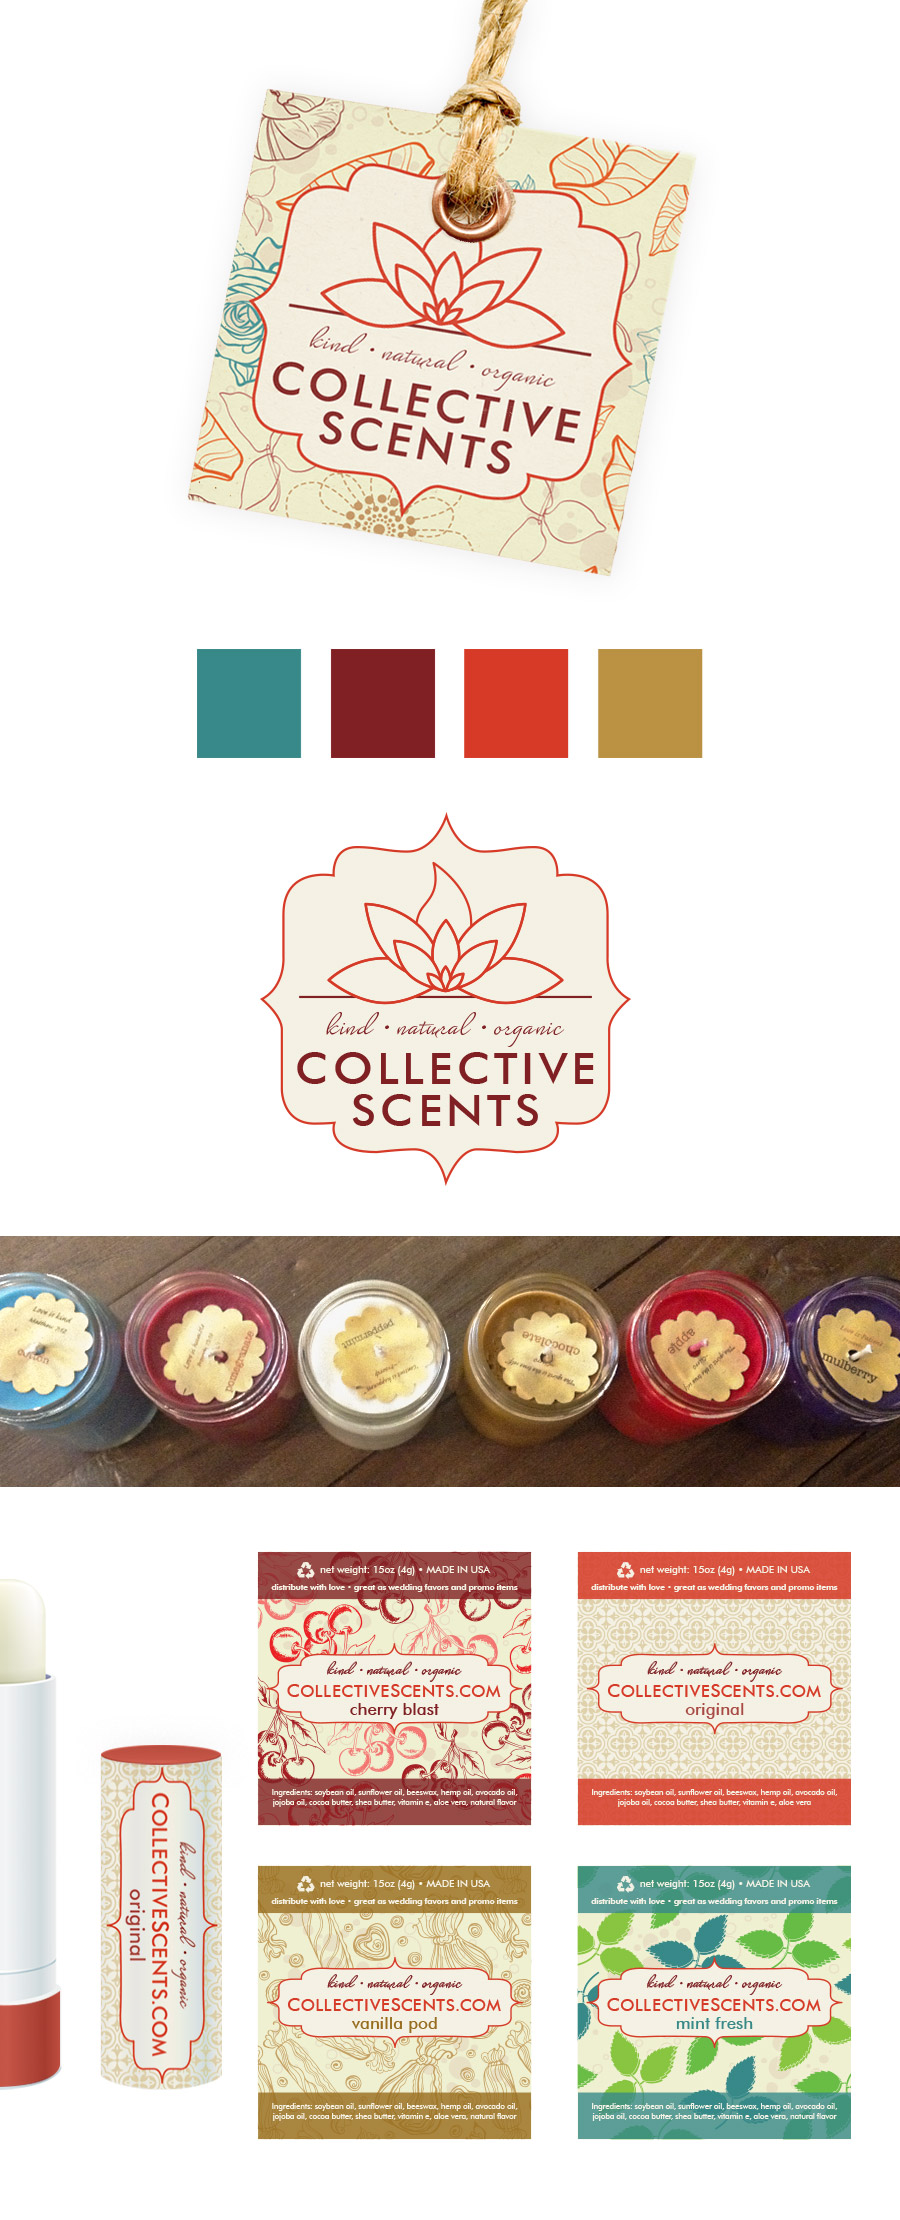 Collective Scents